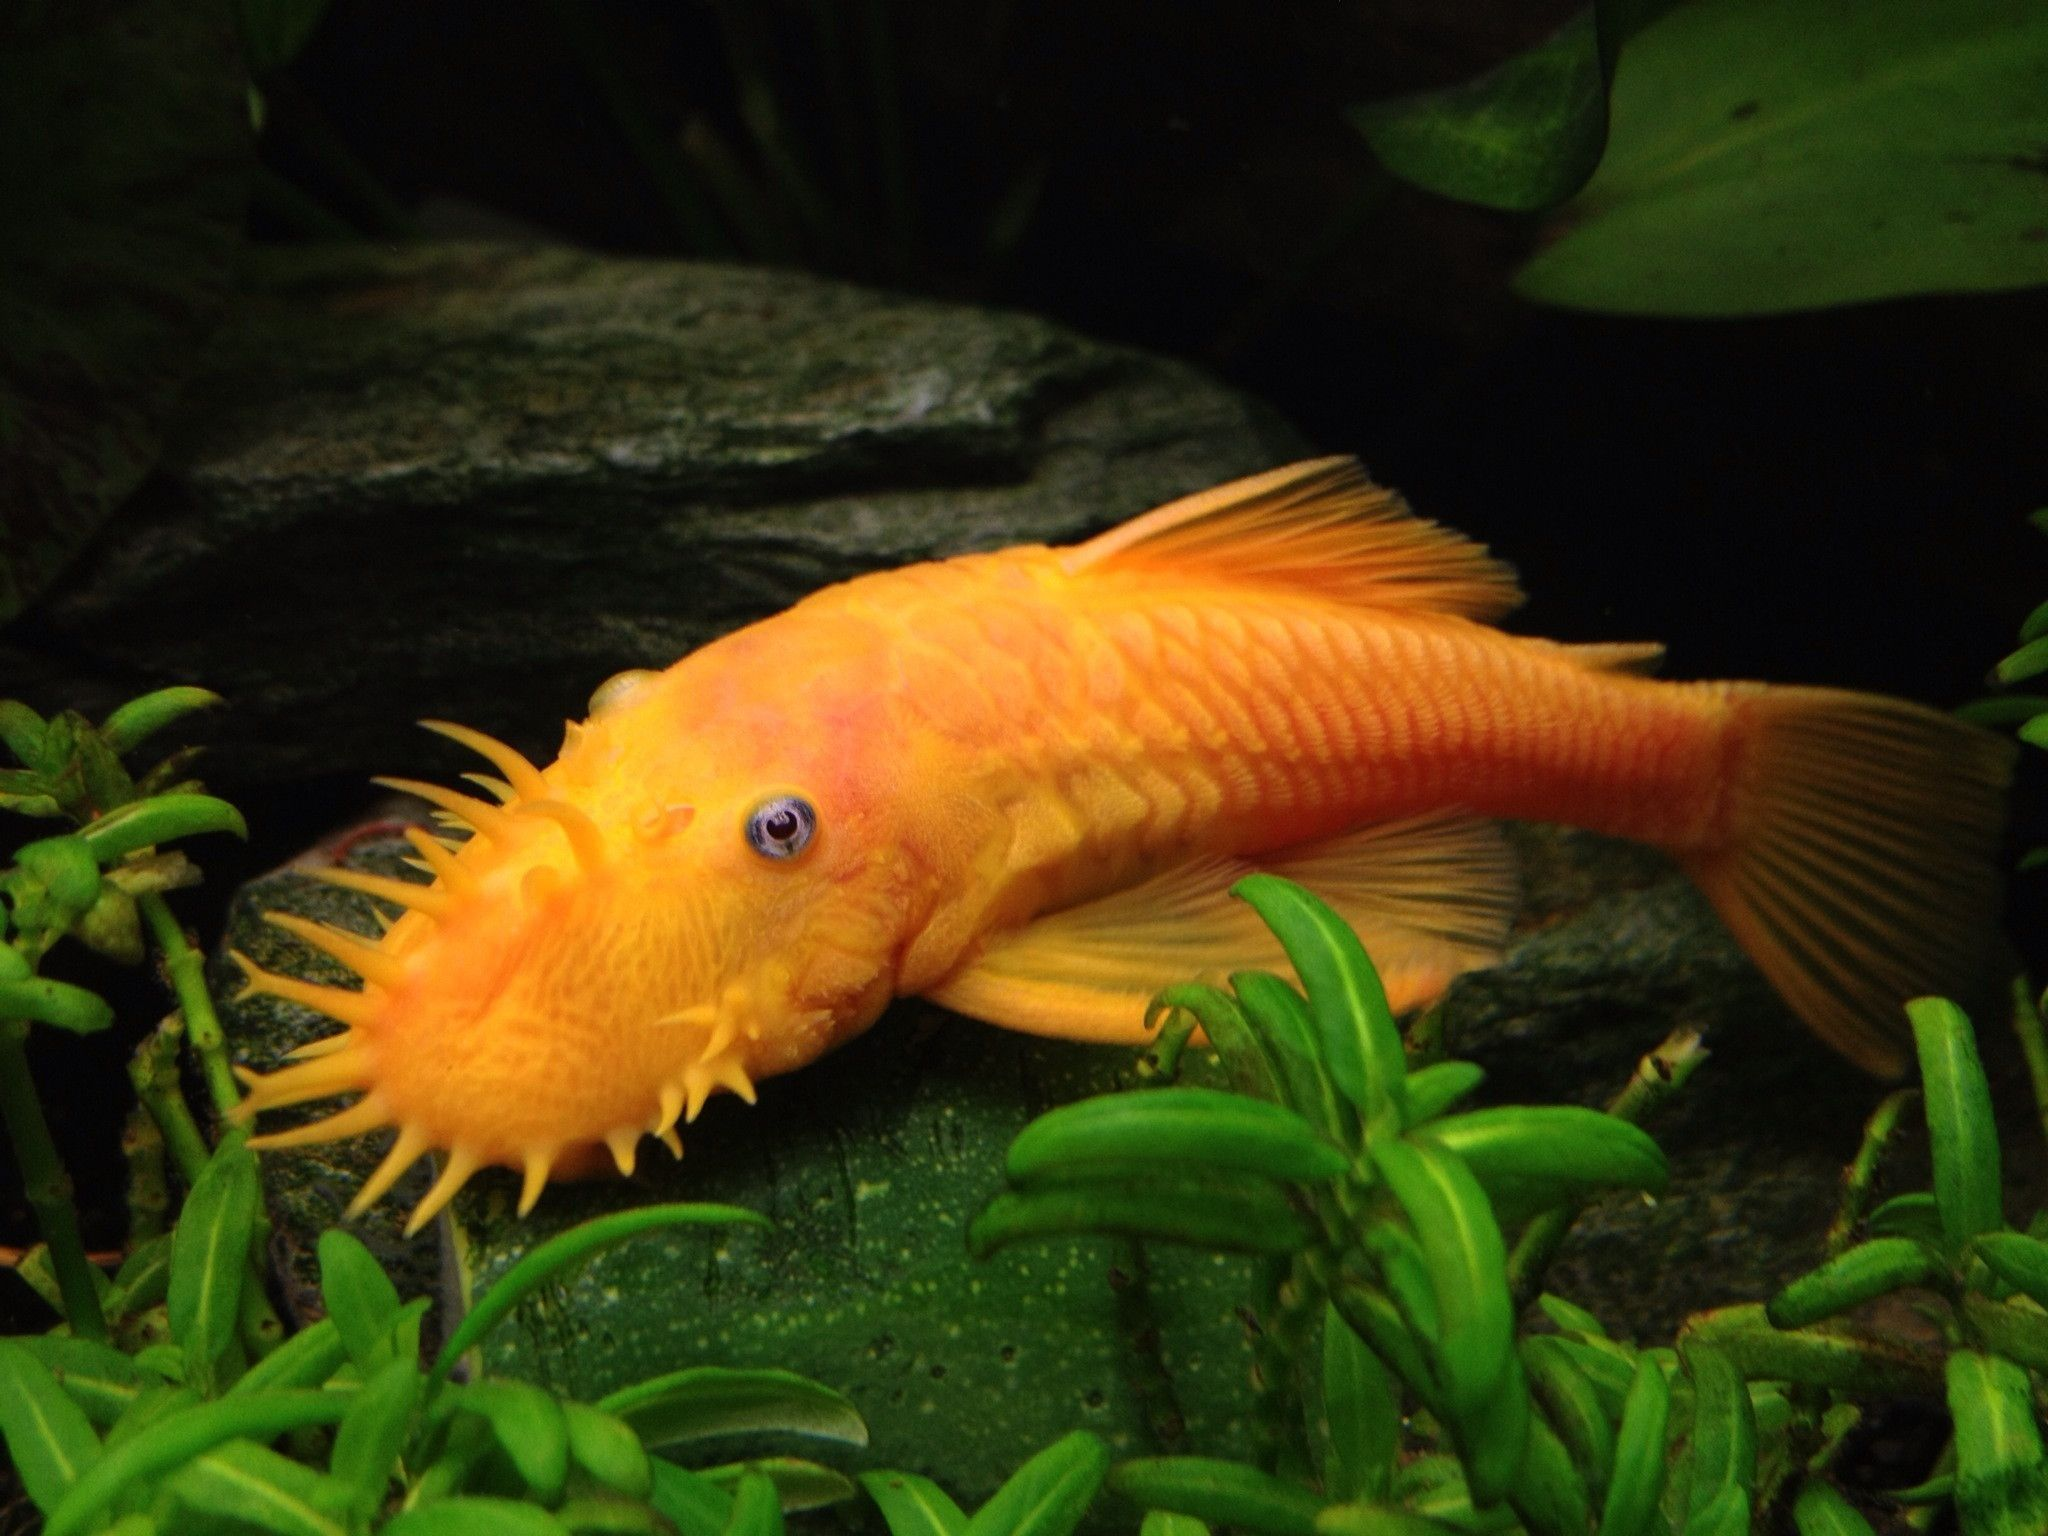 Eiagggp Jpg 2048 1536 Aquarium Fish Aquarium Catfish Freshwater Fish